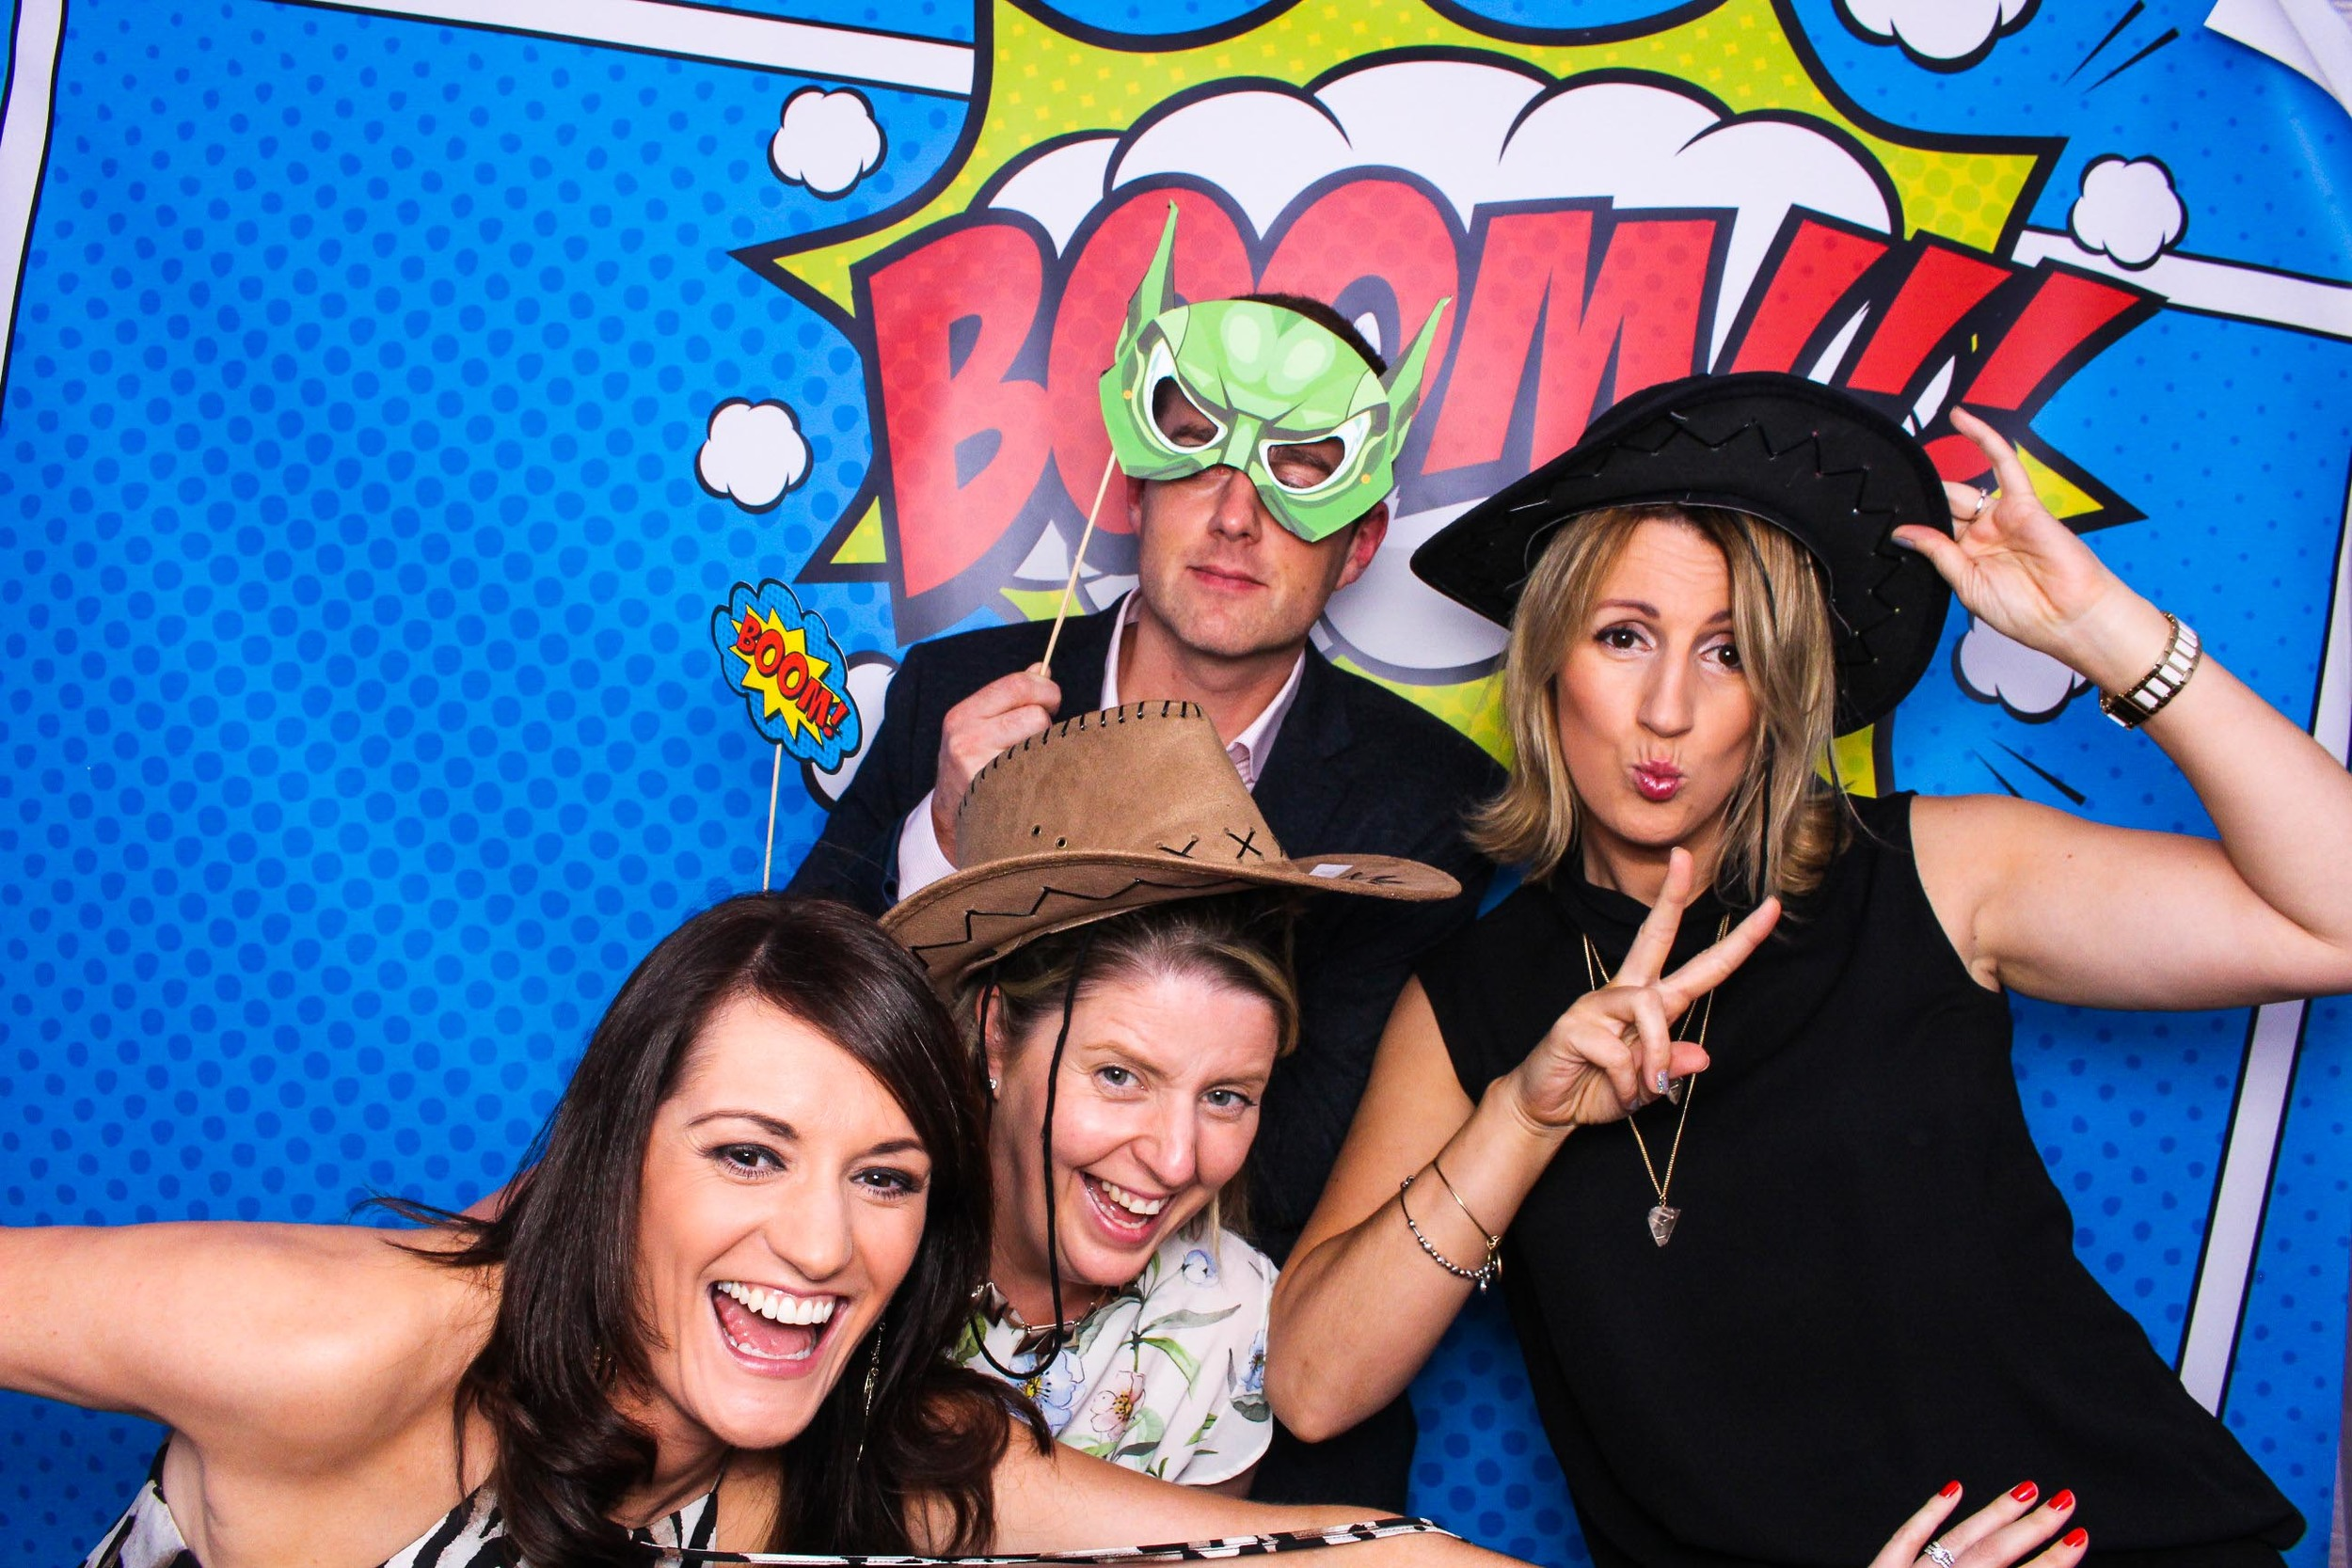 Fotoauto Photo Booth Hire - Shop Direct-92.jpg